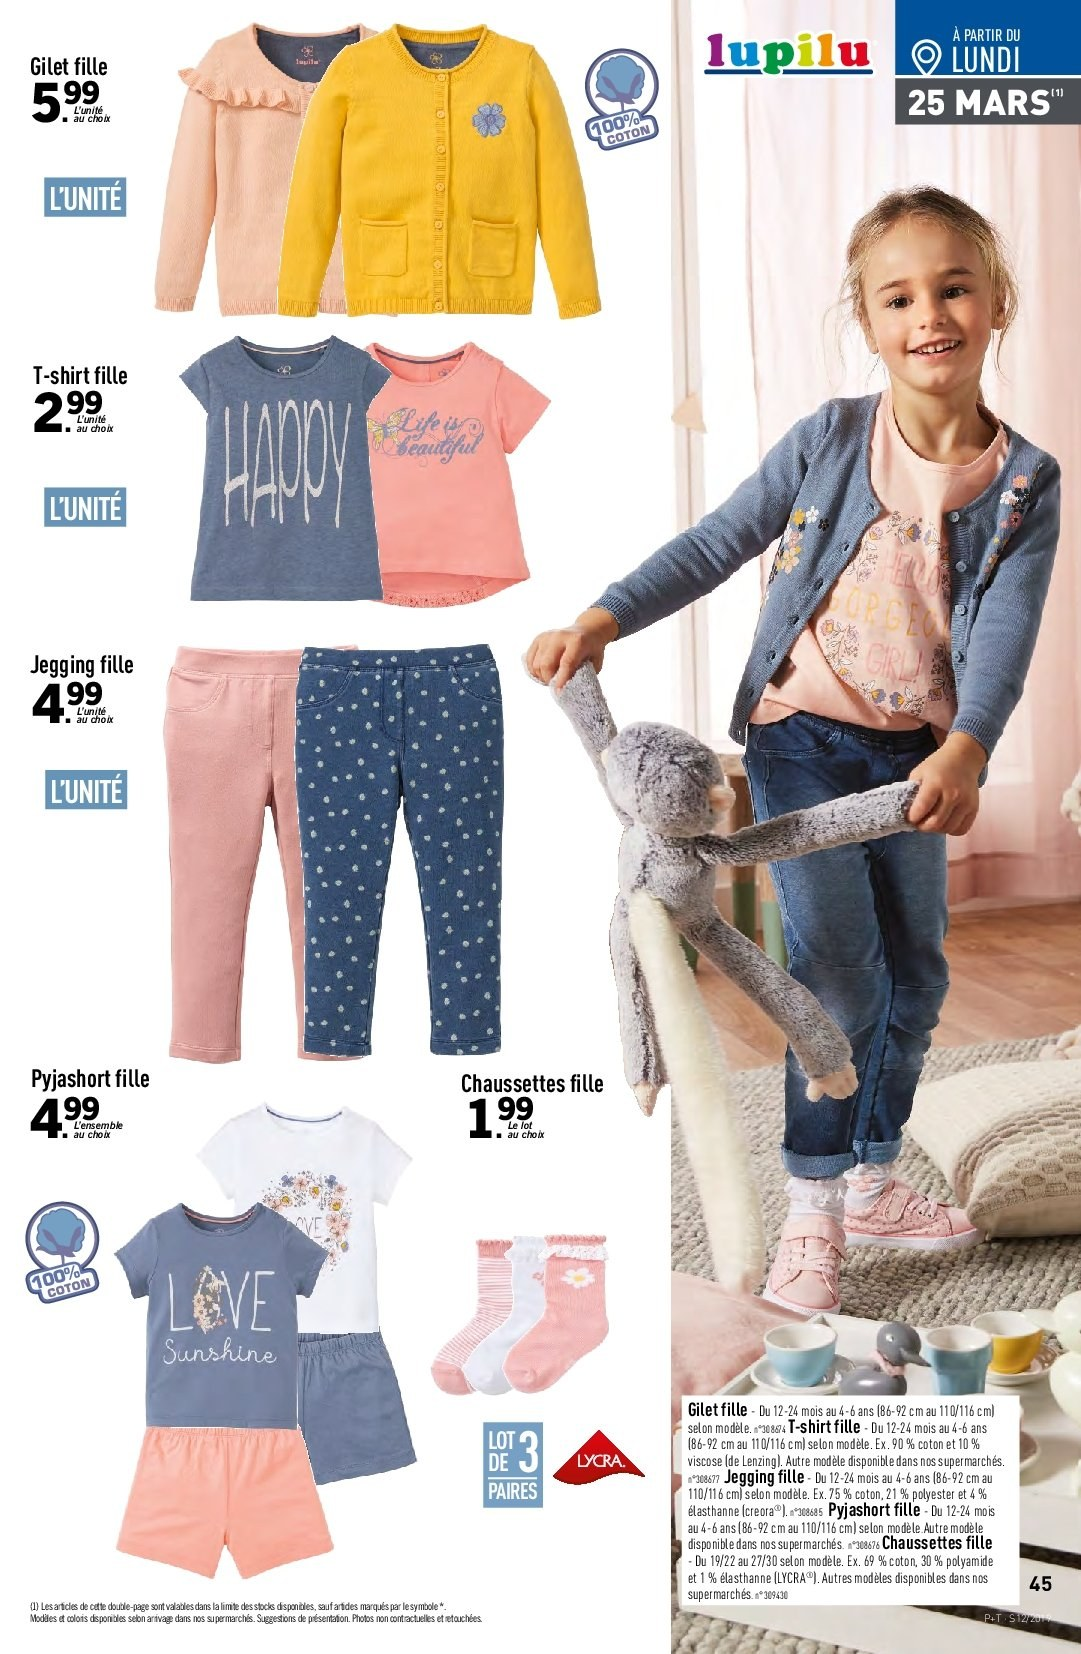 Catalogue Lidl - 20.03.2019 - 26.03.2019. Page 45.